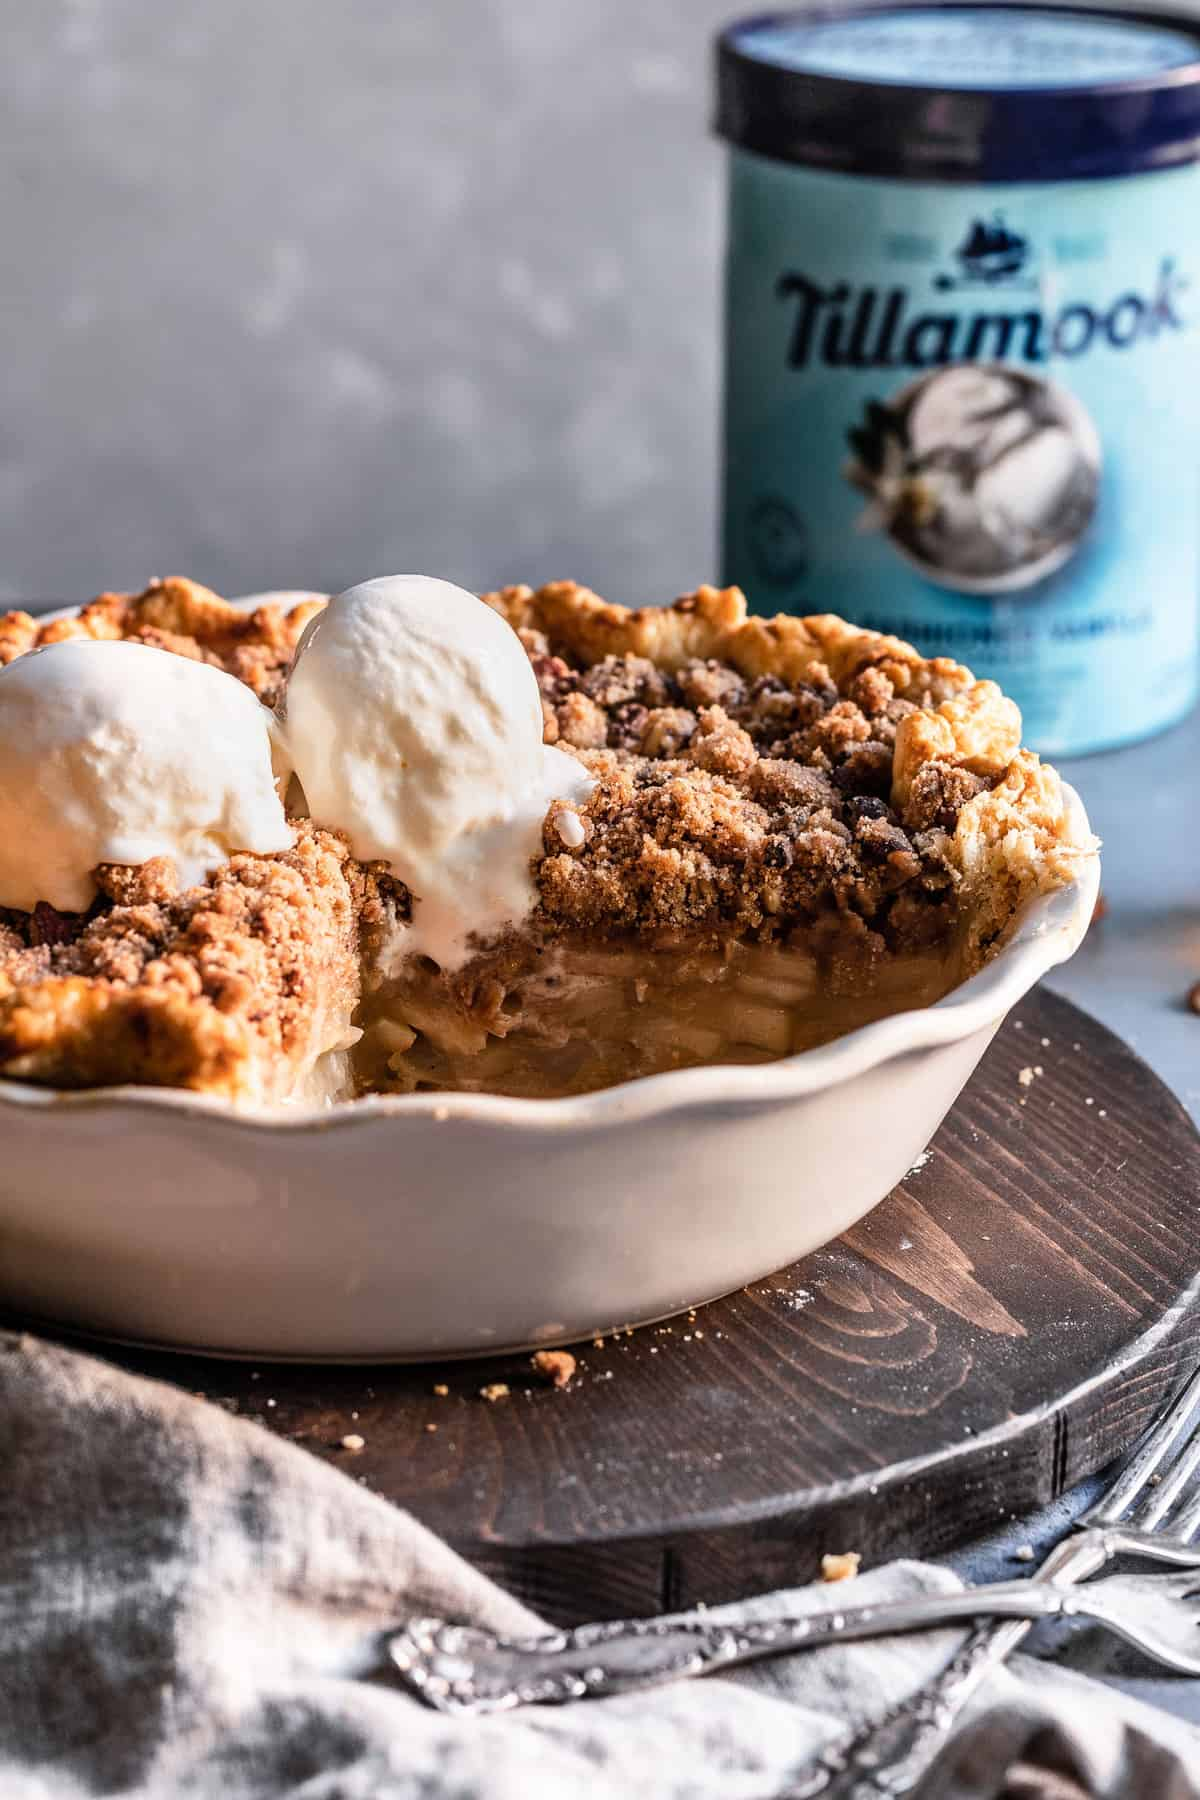 Pear pie with pecan cinnamon streusel topped with Tillamook ice cream.